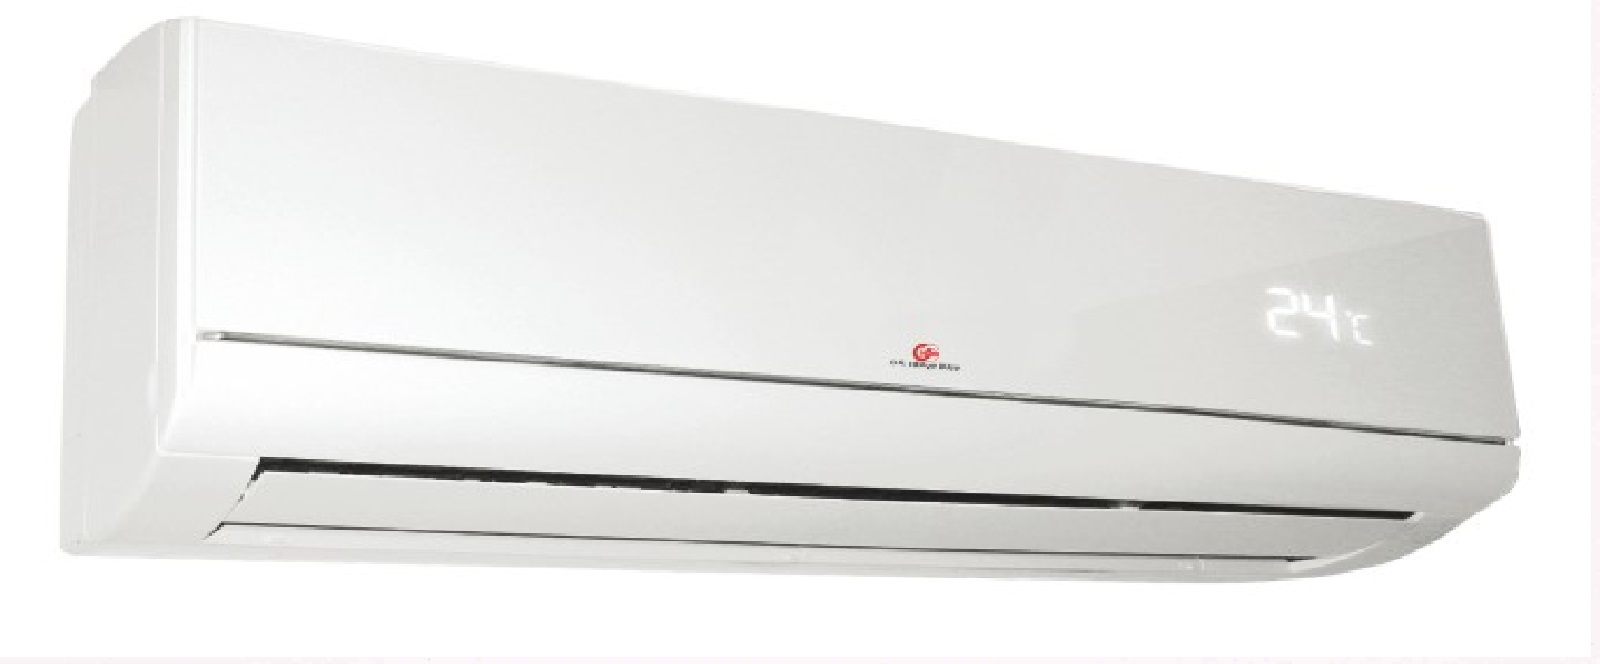 3 5 Ton Ac Unit >> O.G Heavy Duty Split Air Conditioners Price in Delhi Window AC Company